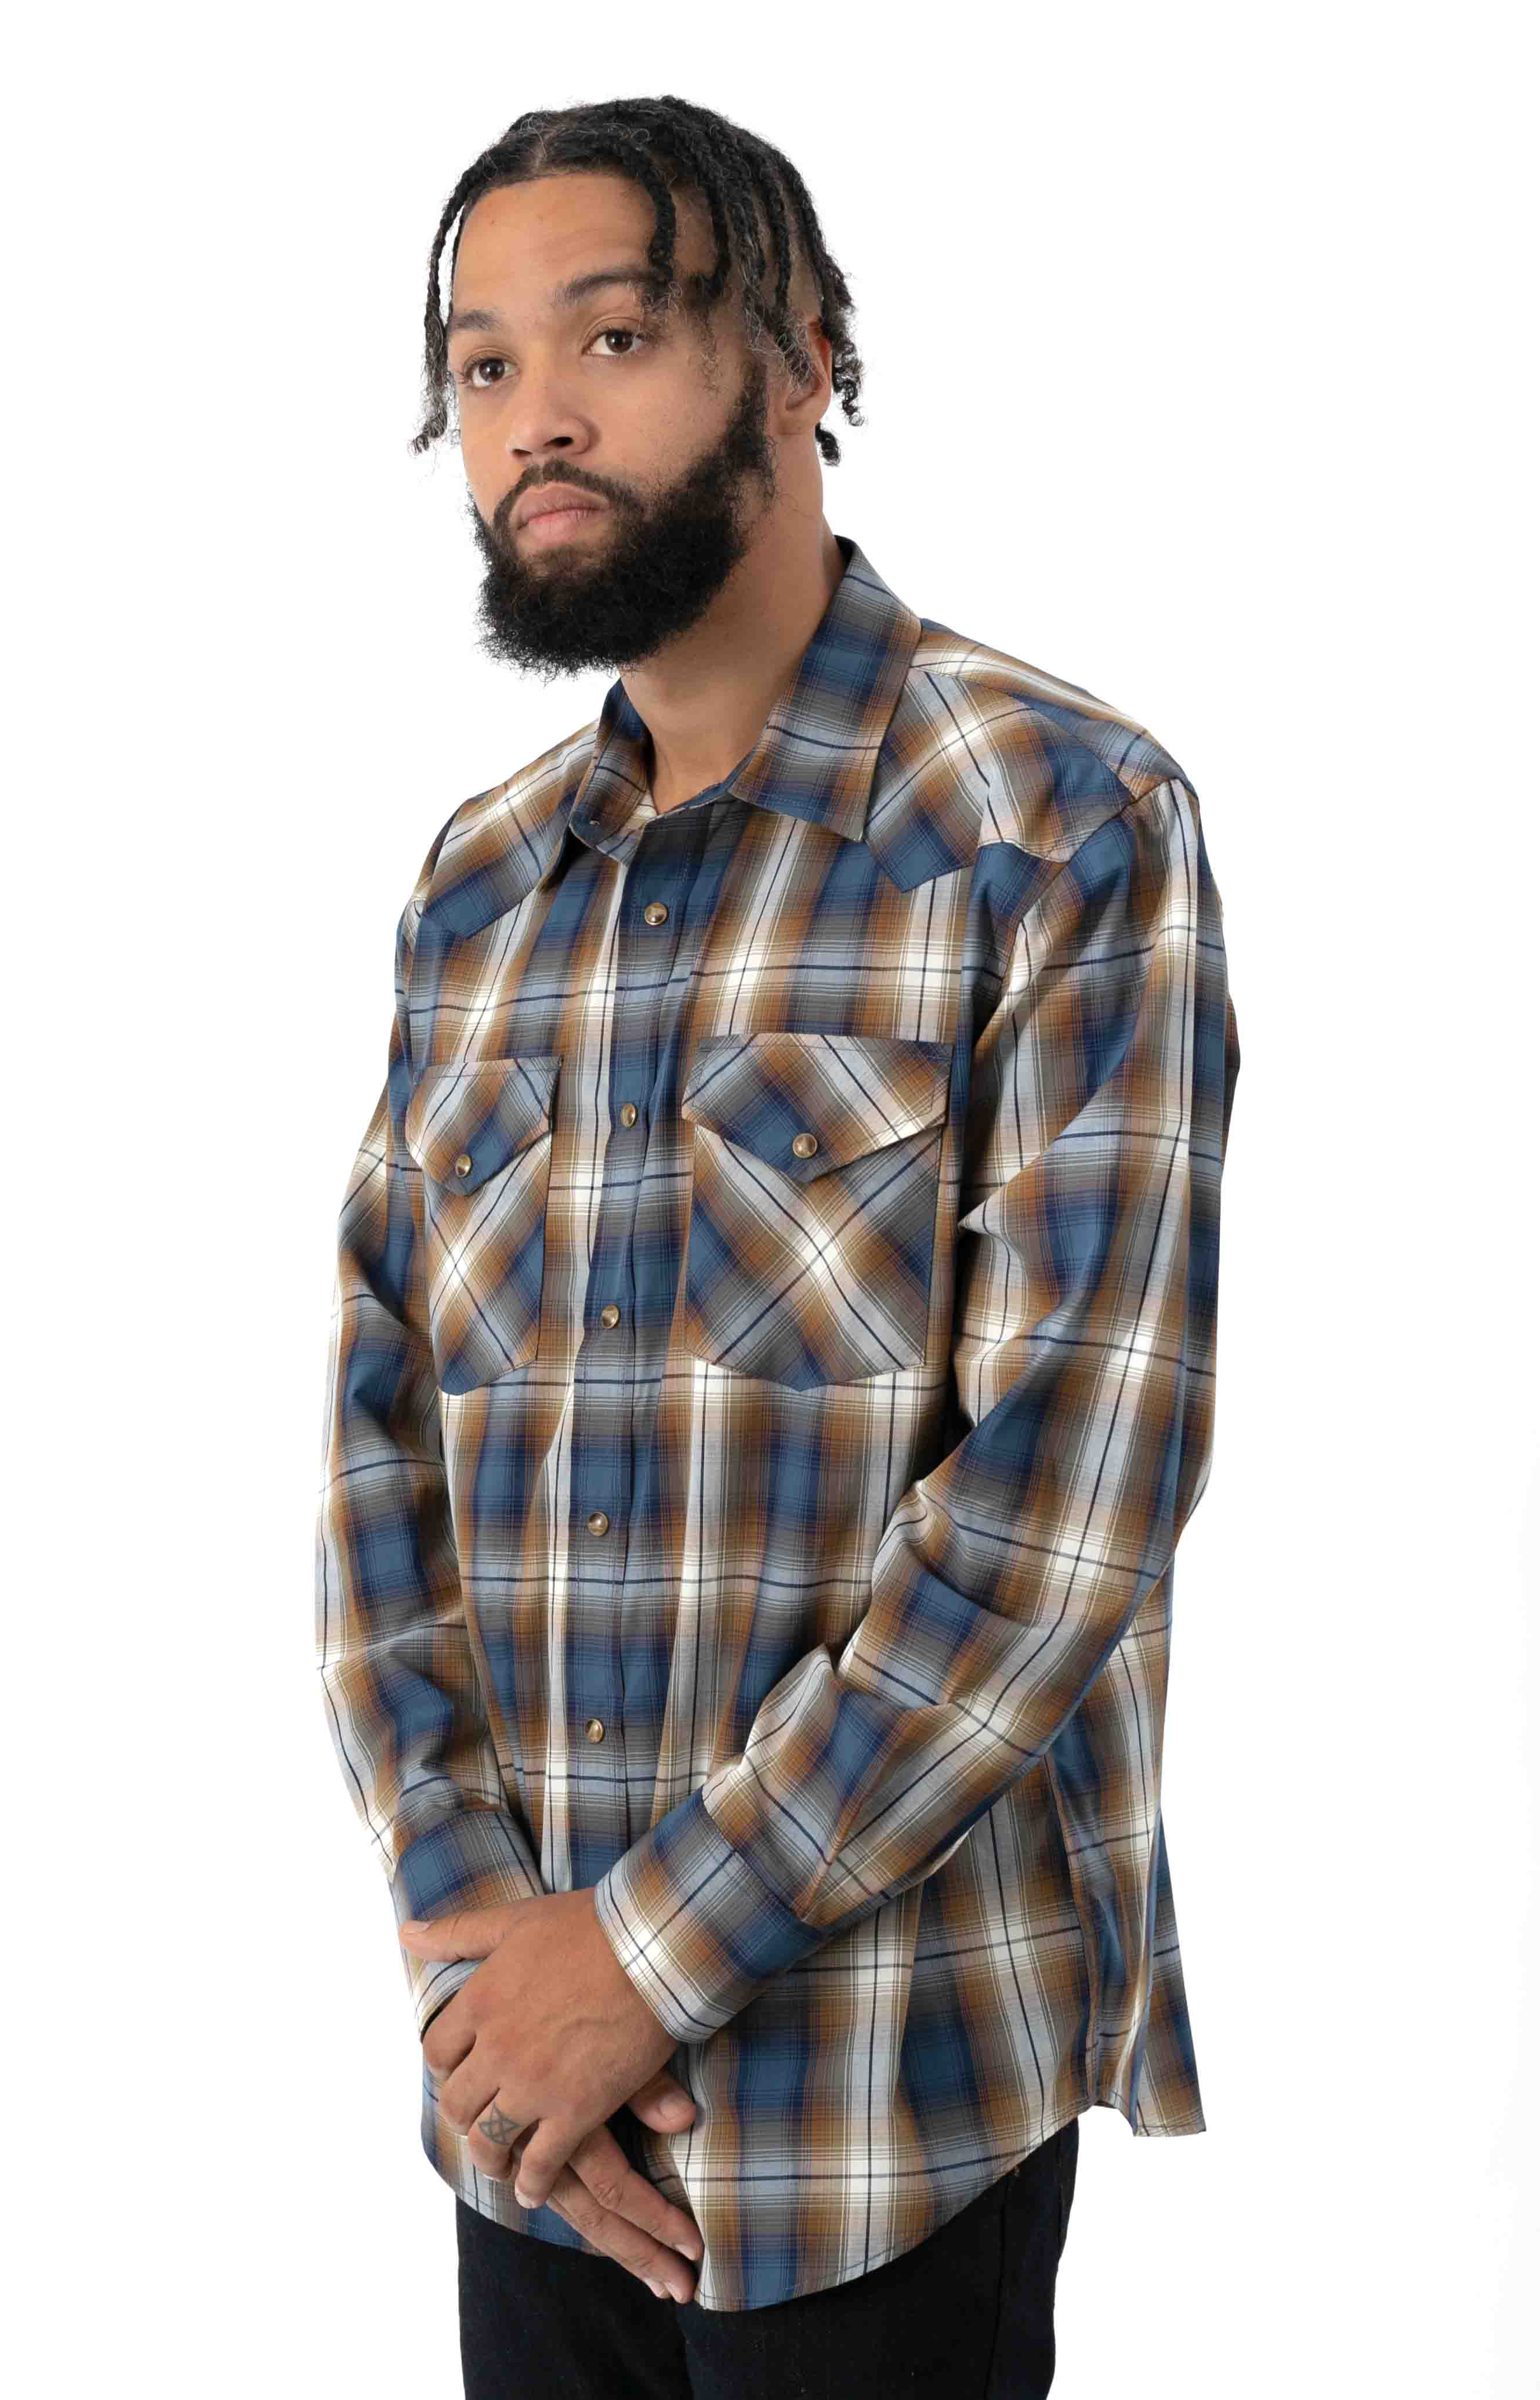 Frontier L/S Button-Up Shirt - Blue/Navy/Brown Plaid  2